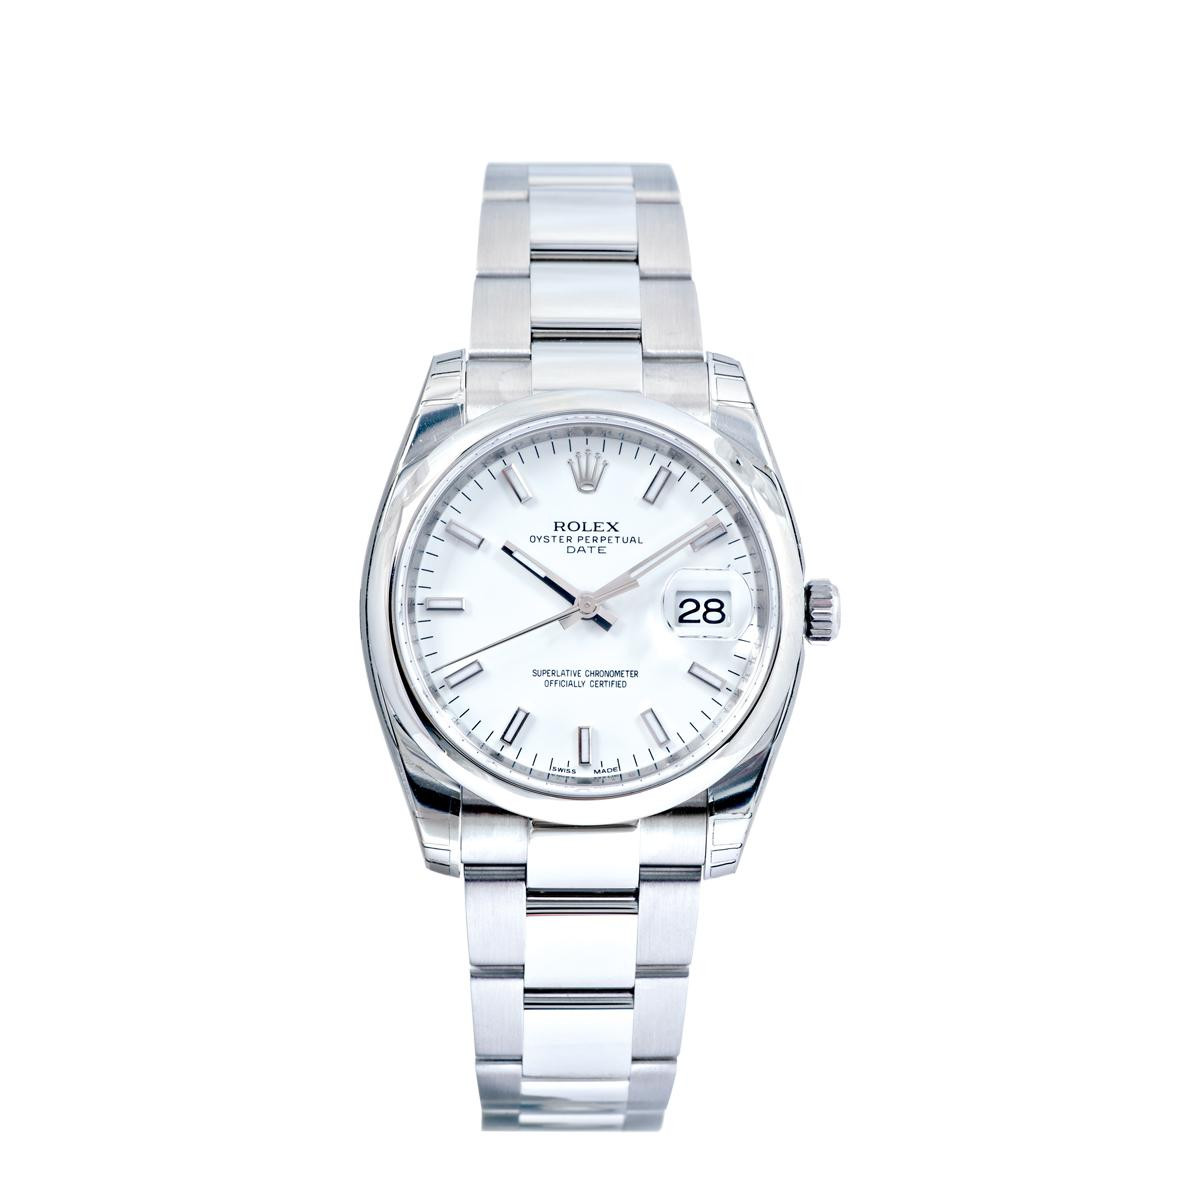 Pre-owned Men's Stainless Steel Rolex Date with White Dial